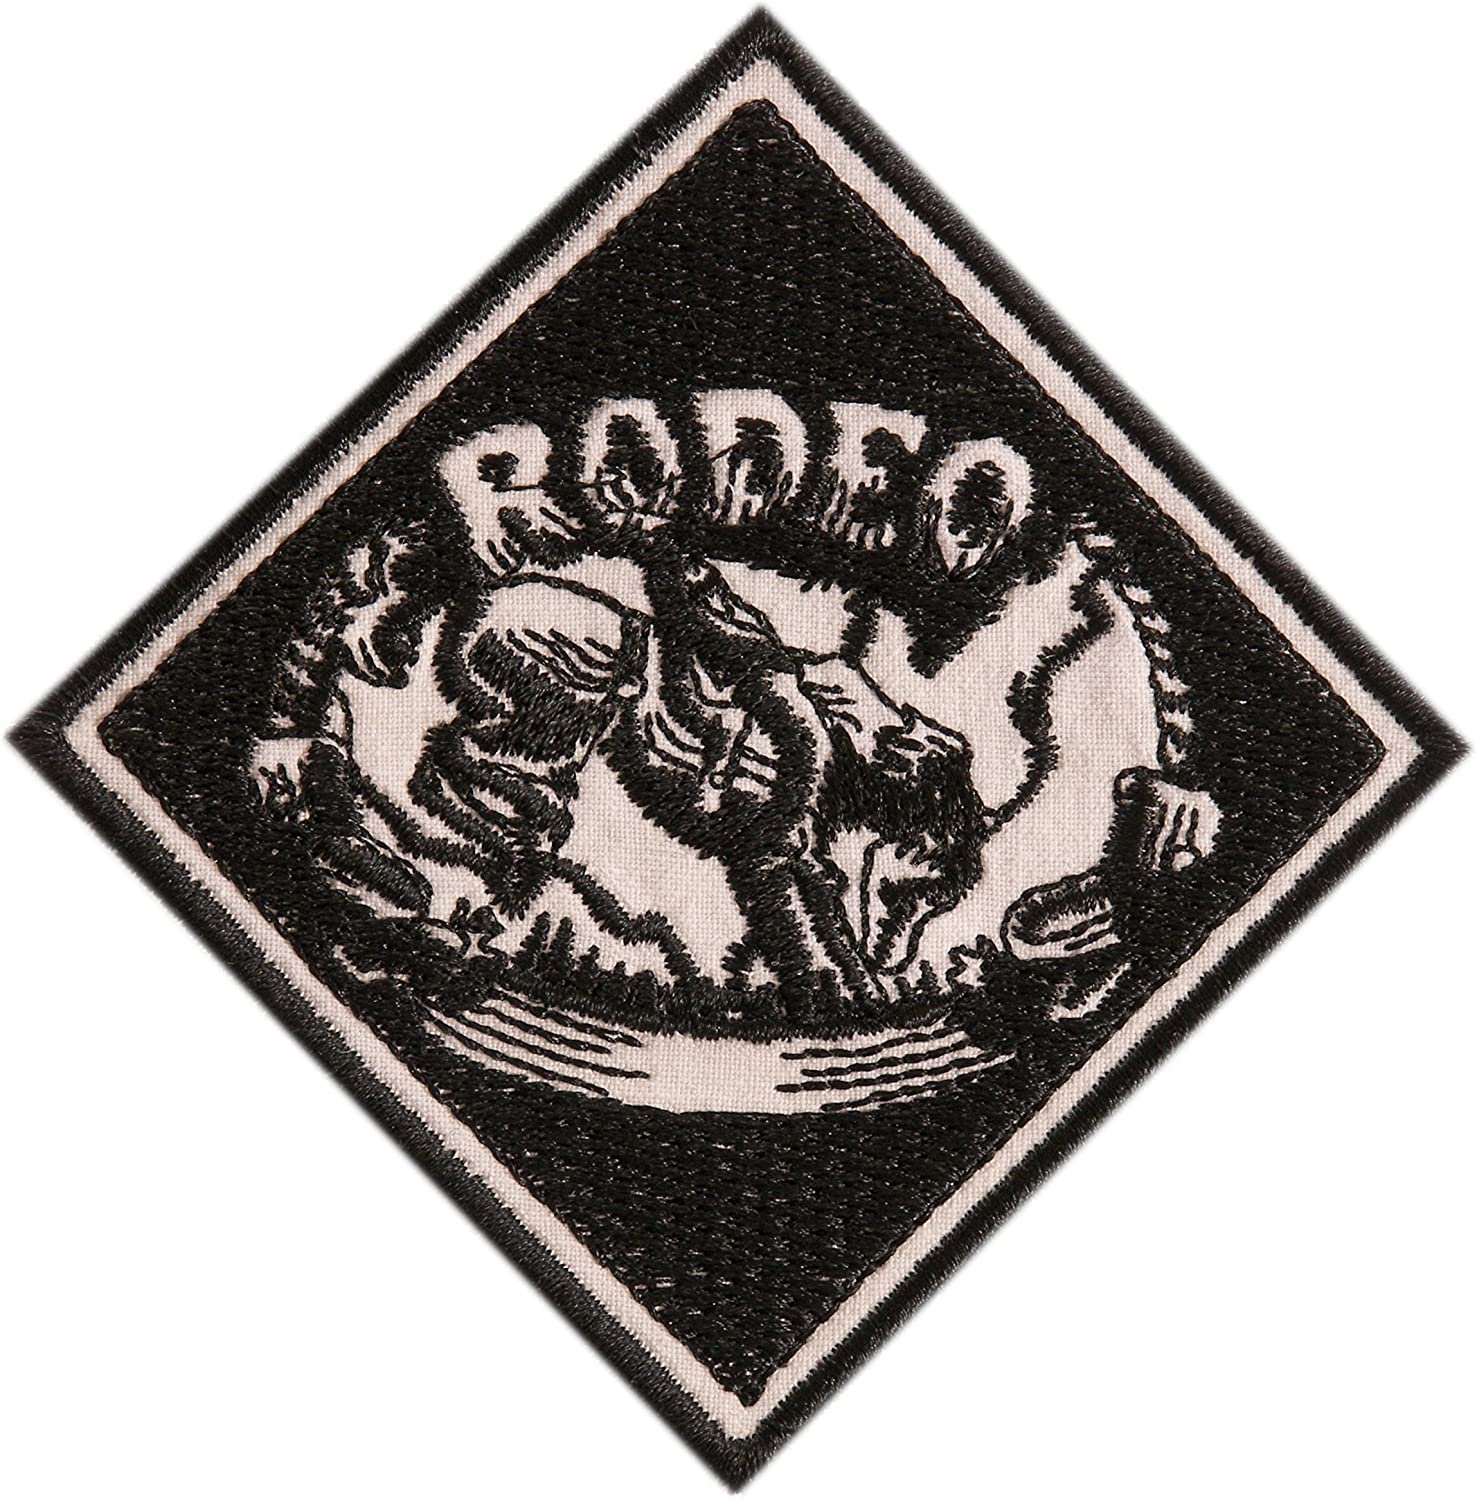 Embroidered Retro Vintage Black /& White Cowboy Rodeo Rider Western Patch Applique Iron On